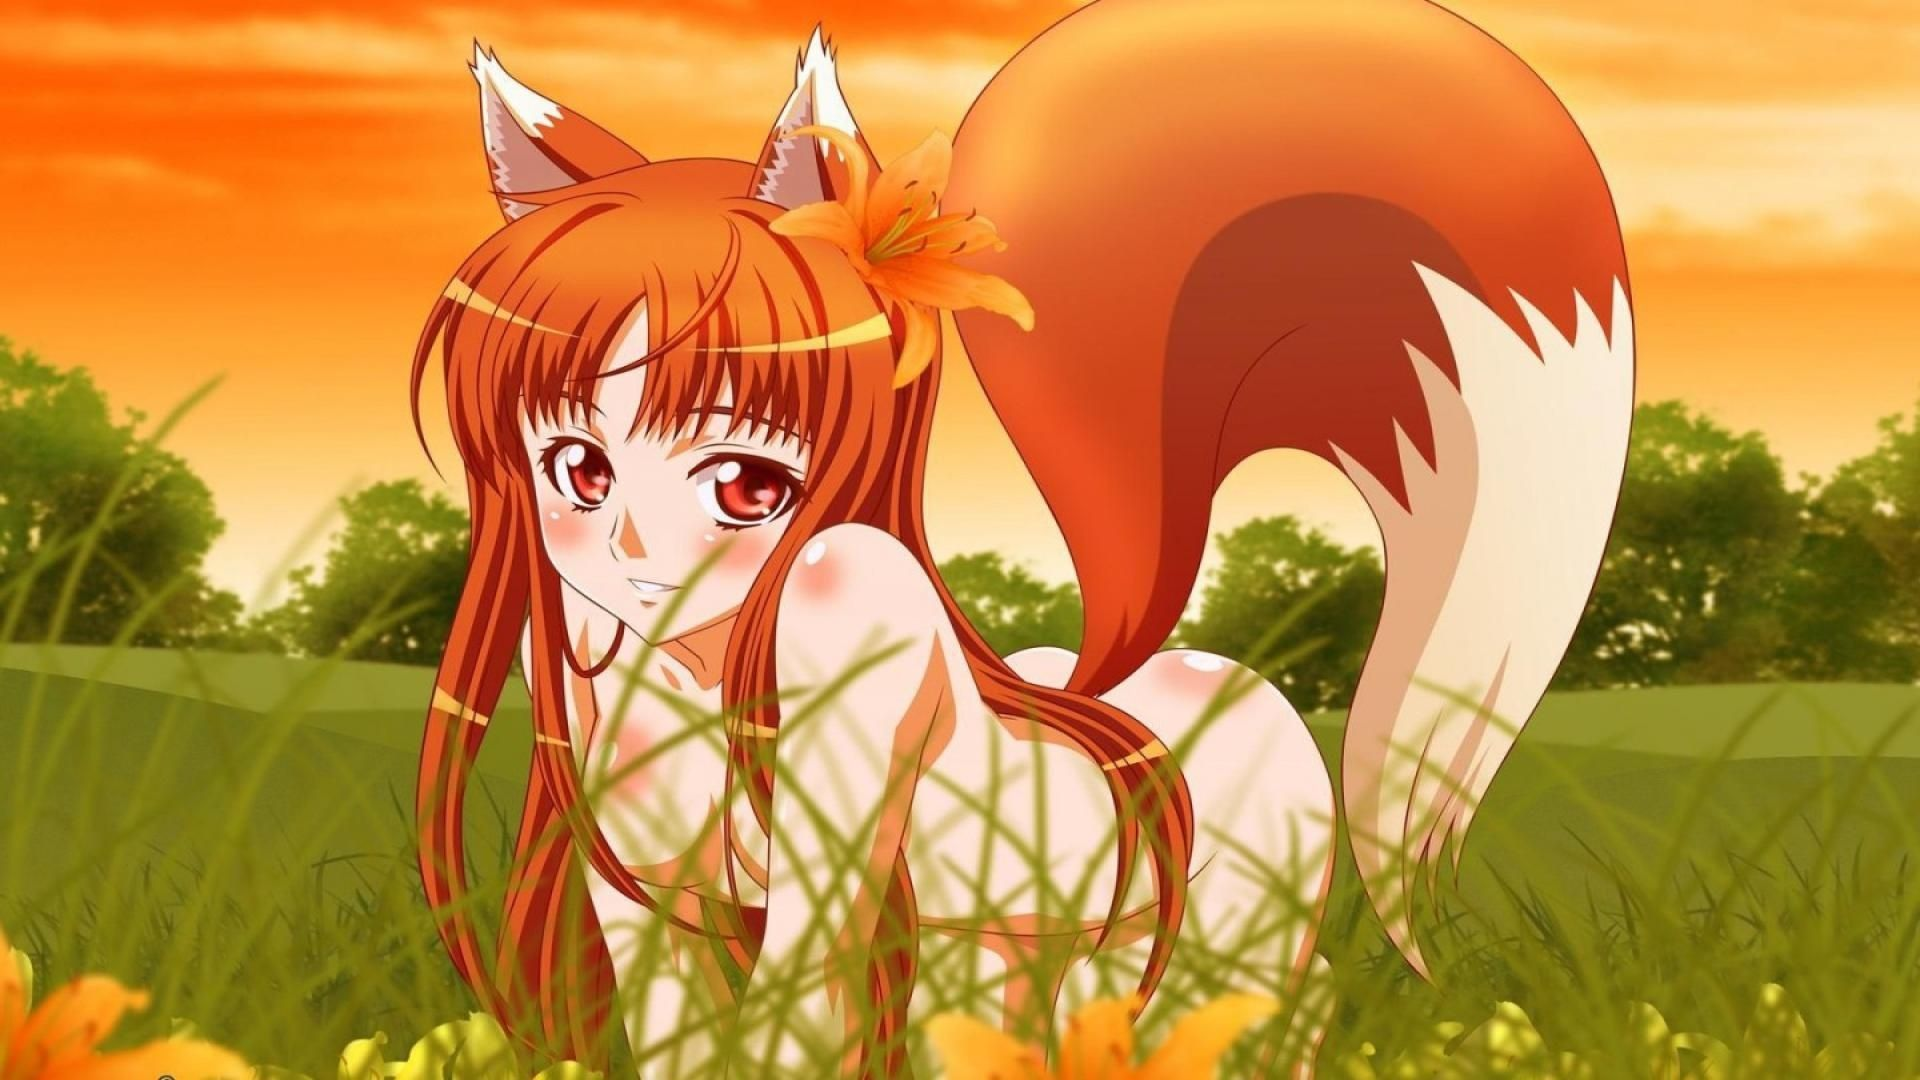 Fox Cute Anime Wolf Girl Wallpaper